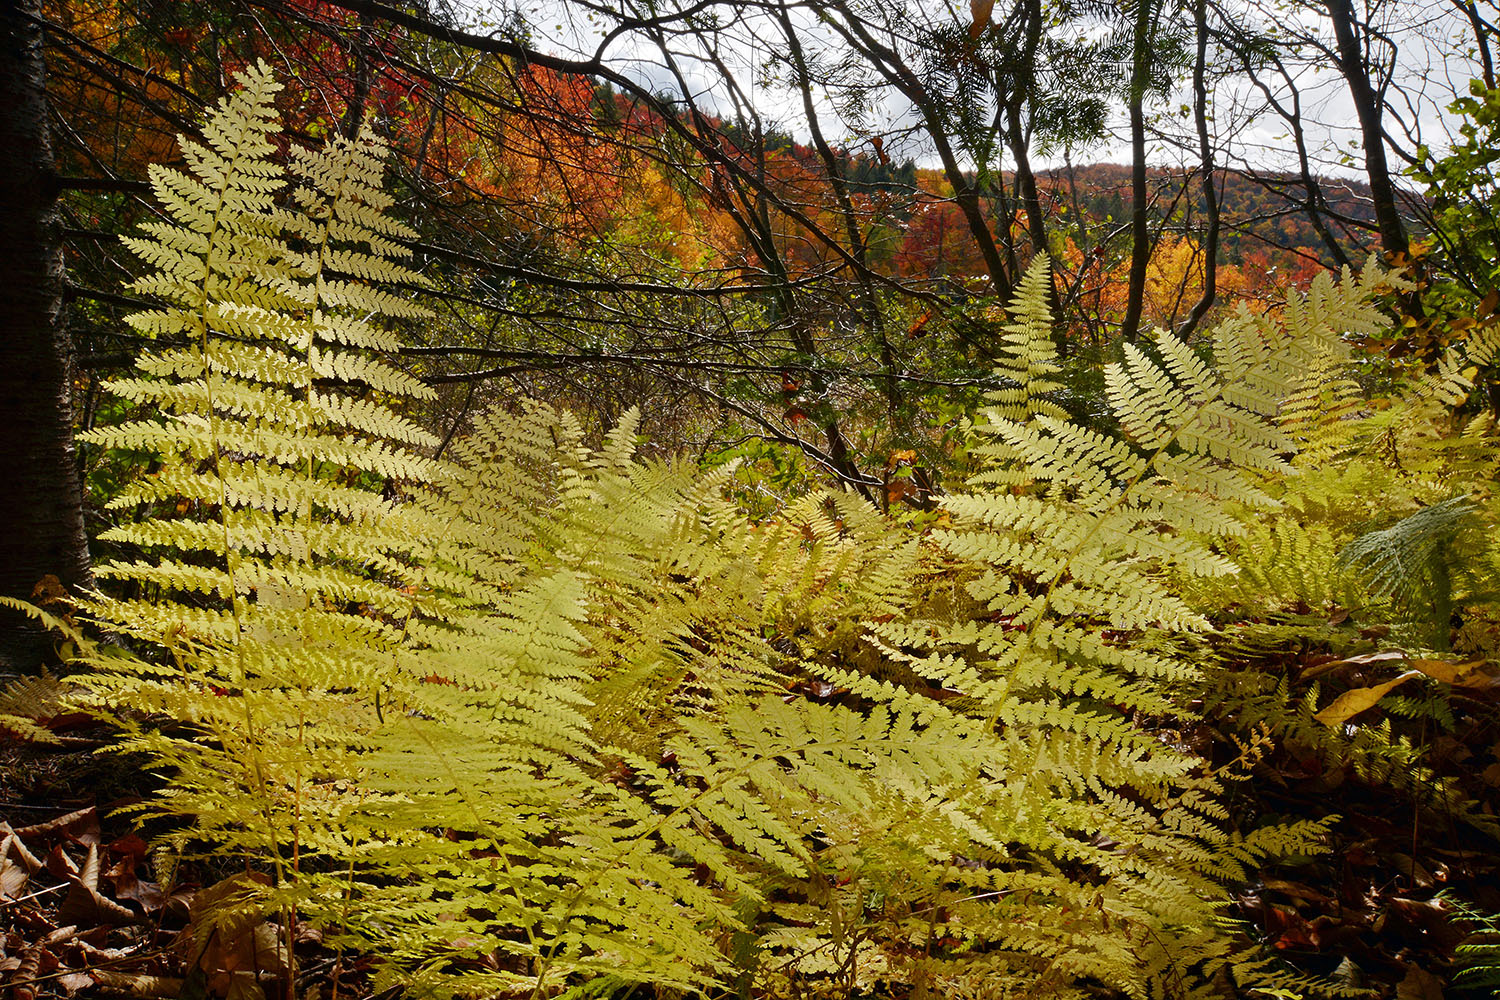 Foliage along trail just before dirt road_1414.jpg